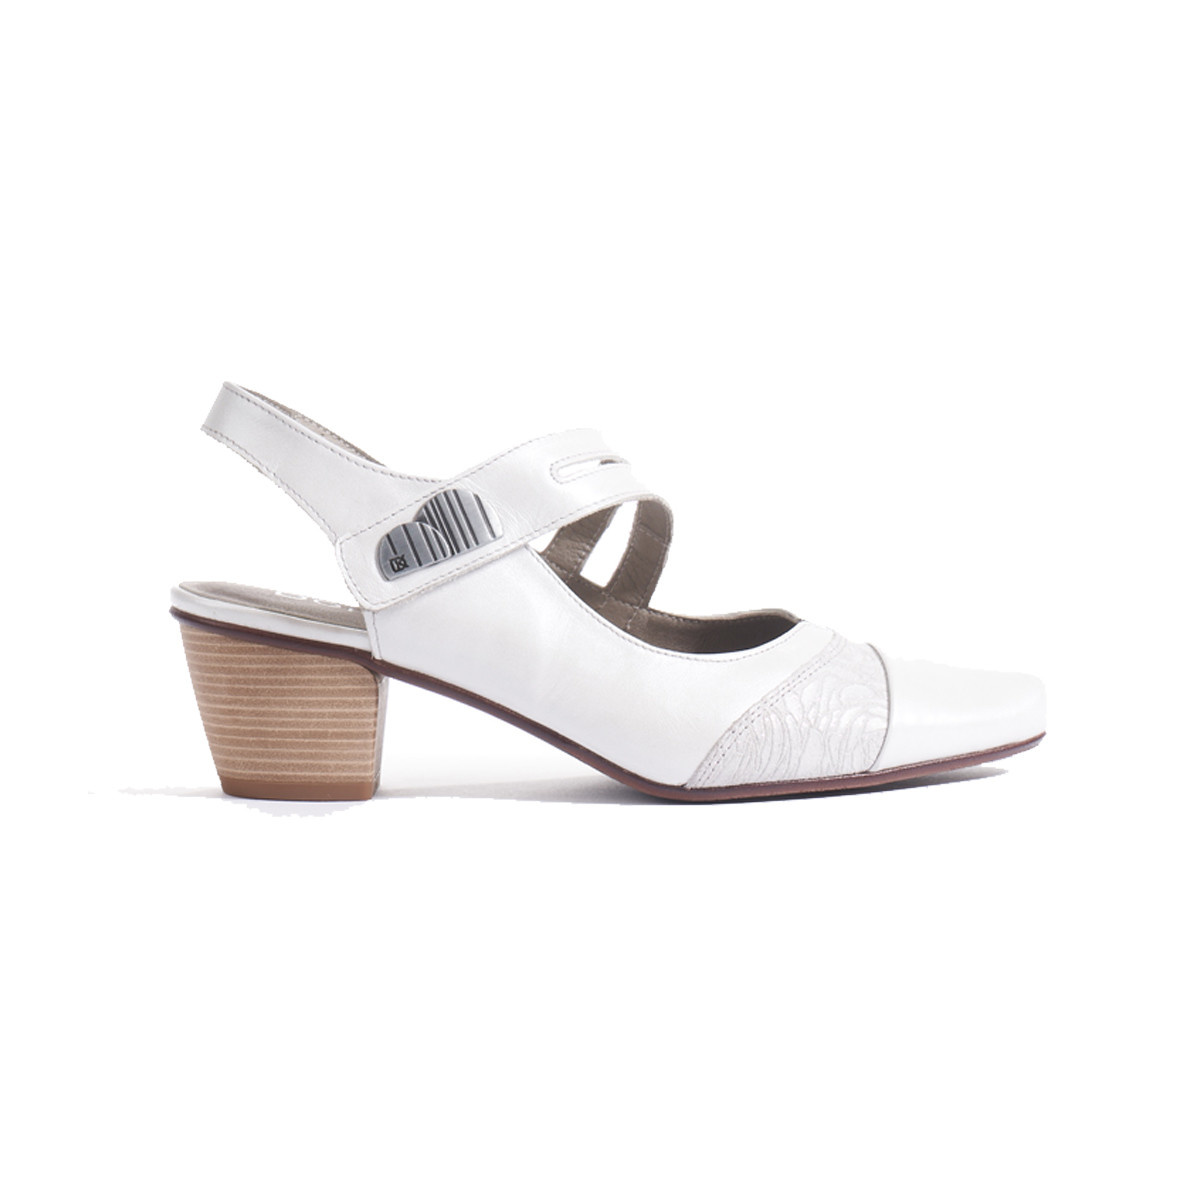 Dorking Dorking Women's 6730 White